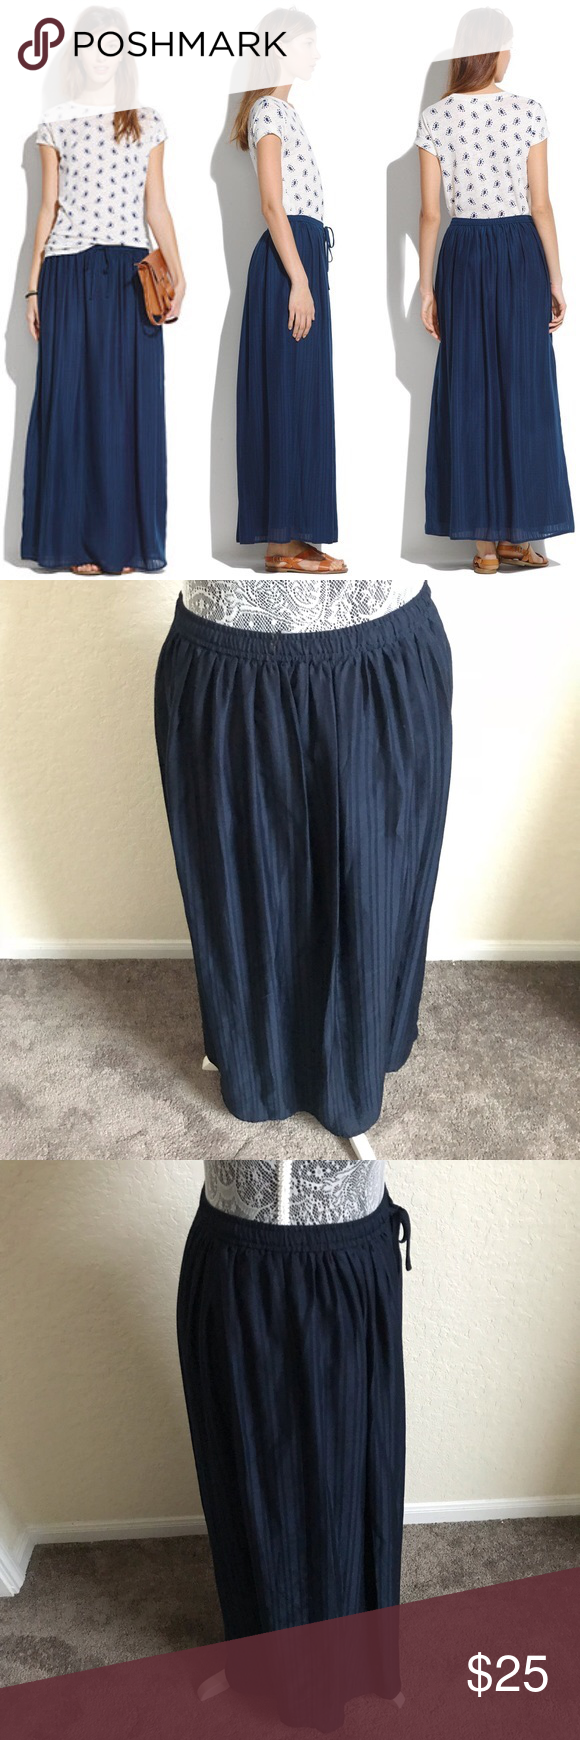 446eb9fd5 Madewell woman small skyward striped maxi skirt Madewell Woman's small Skyward  maxi skirt Dark blue Pinstriped Lined Flowly Drawstring waist Gently used  No ...